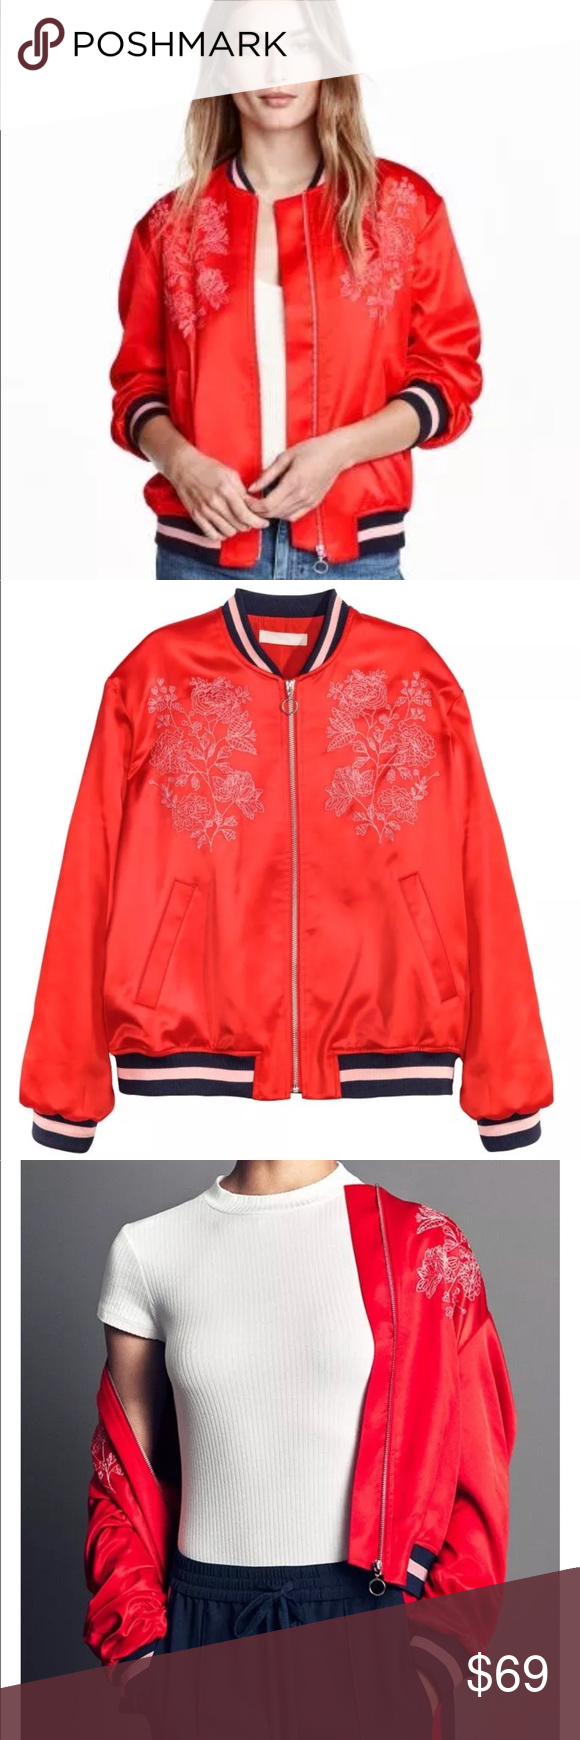 H M Red Satin Bomber Embroidered Silk Jacket Hm Brand New Never Worn Medium Sold Out Everywhere H M Bomber Silk Jacket Embroidered Silk Clothes Design [ 1740 x 580 Pixel ]